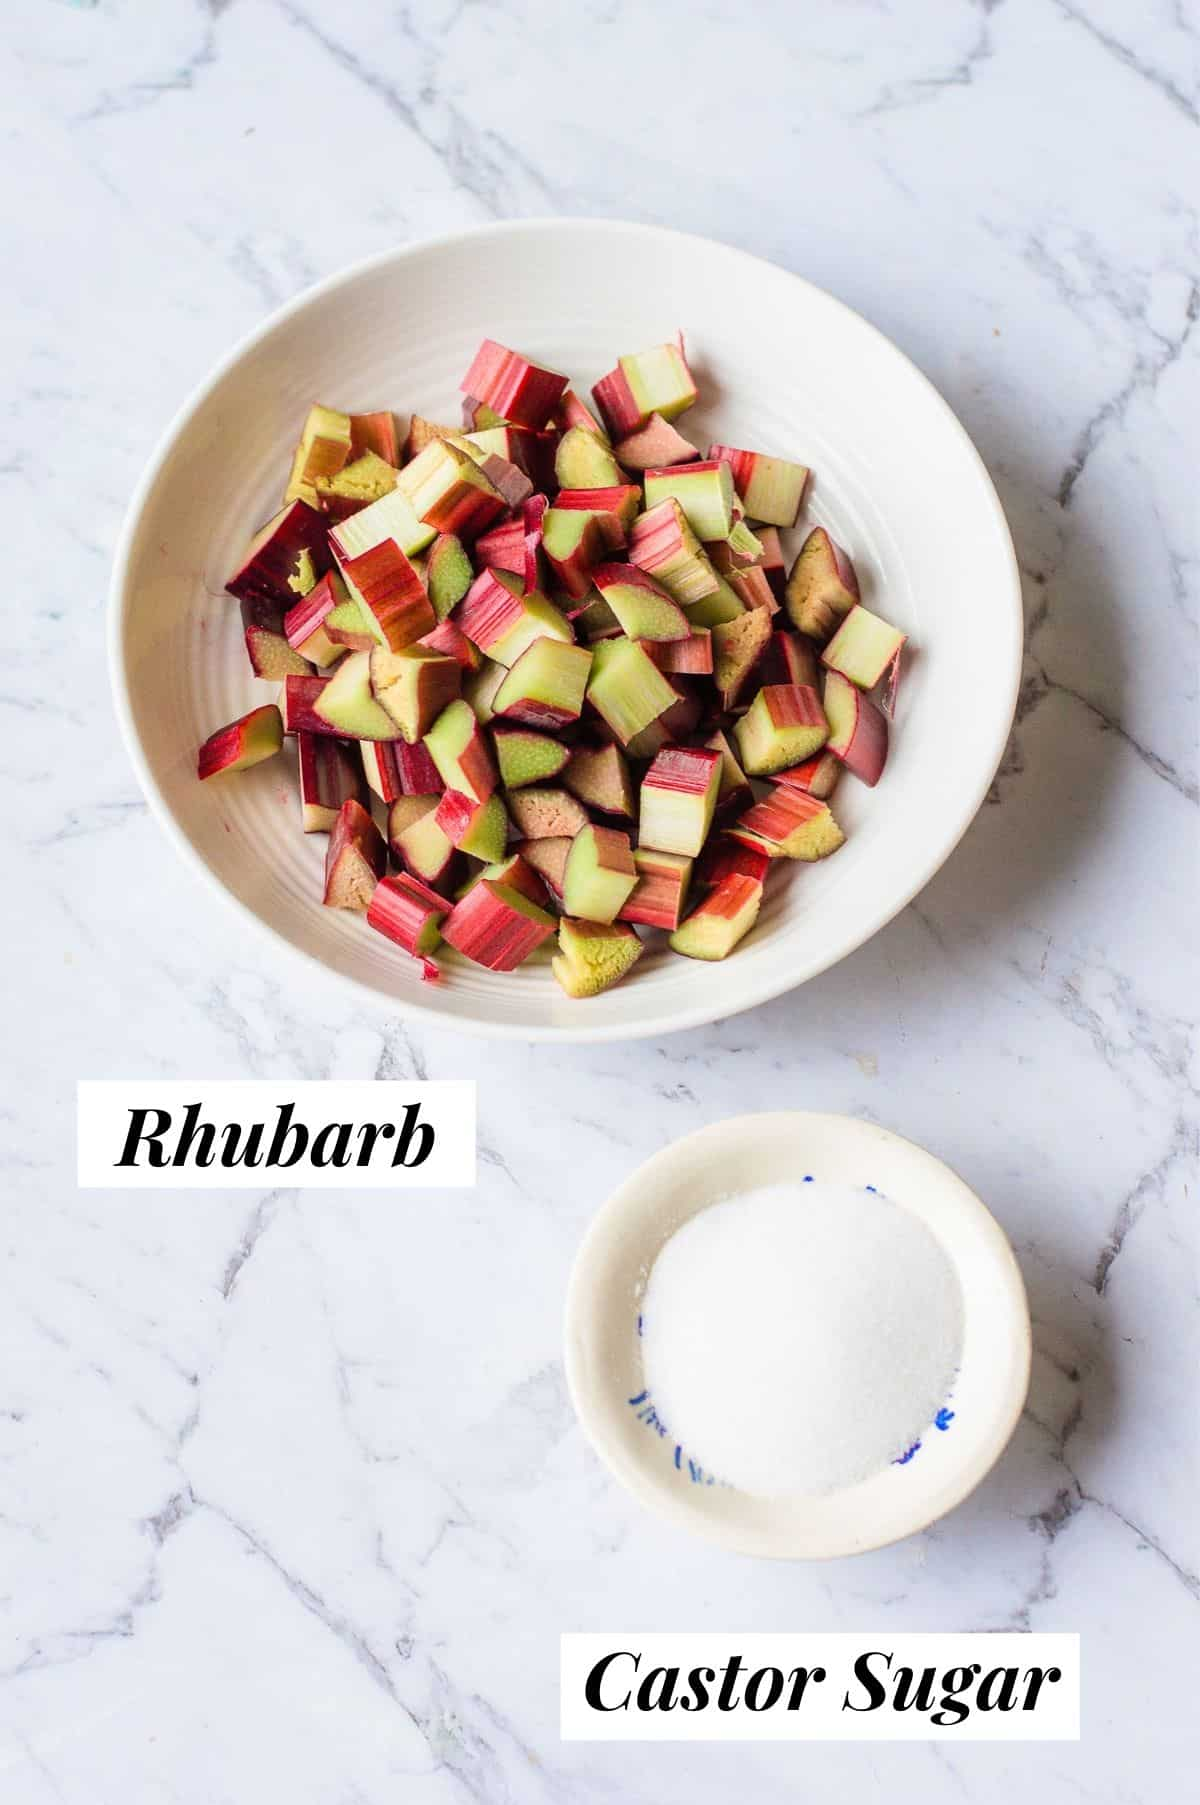 Rhubarb and castor sugar on a marble background.